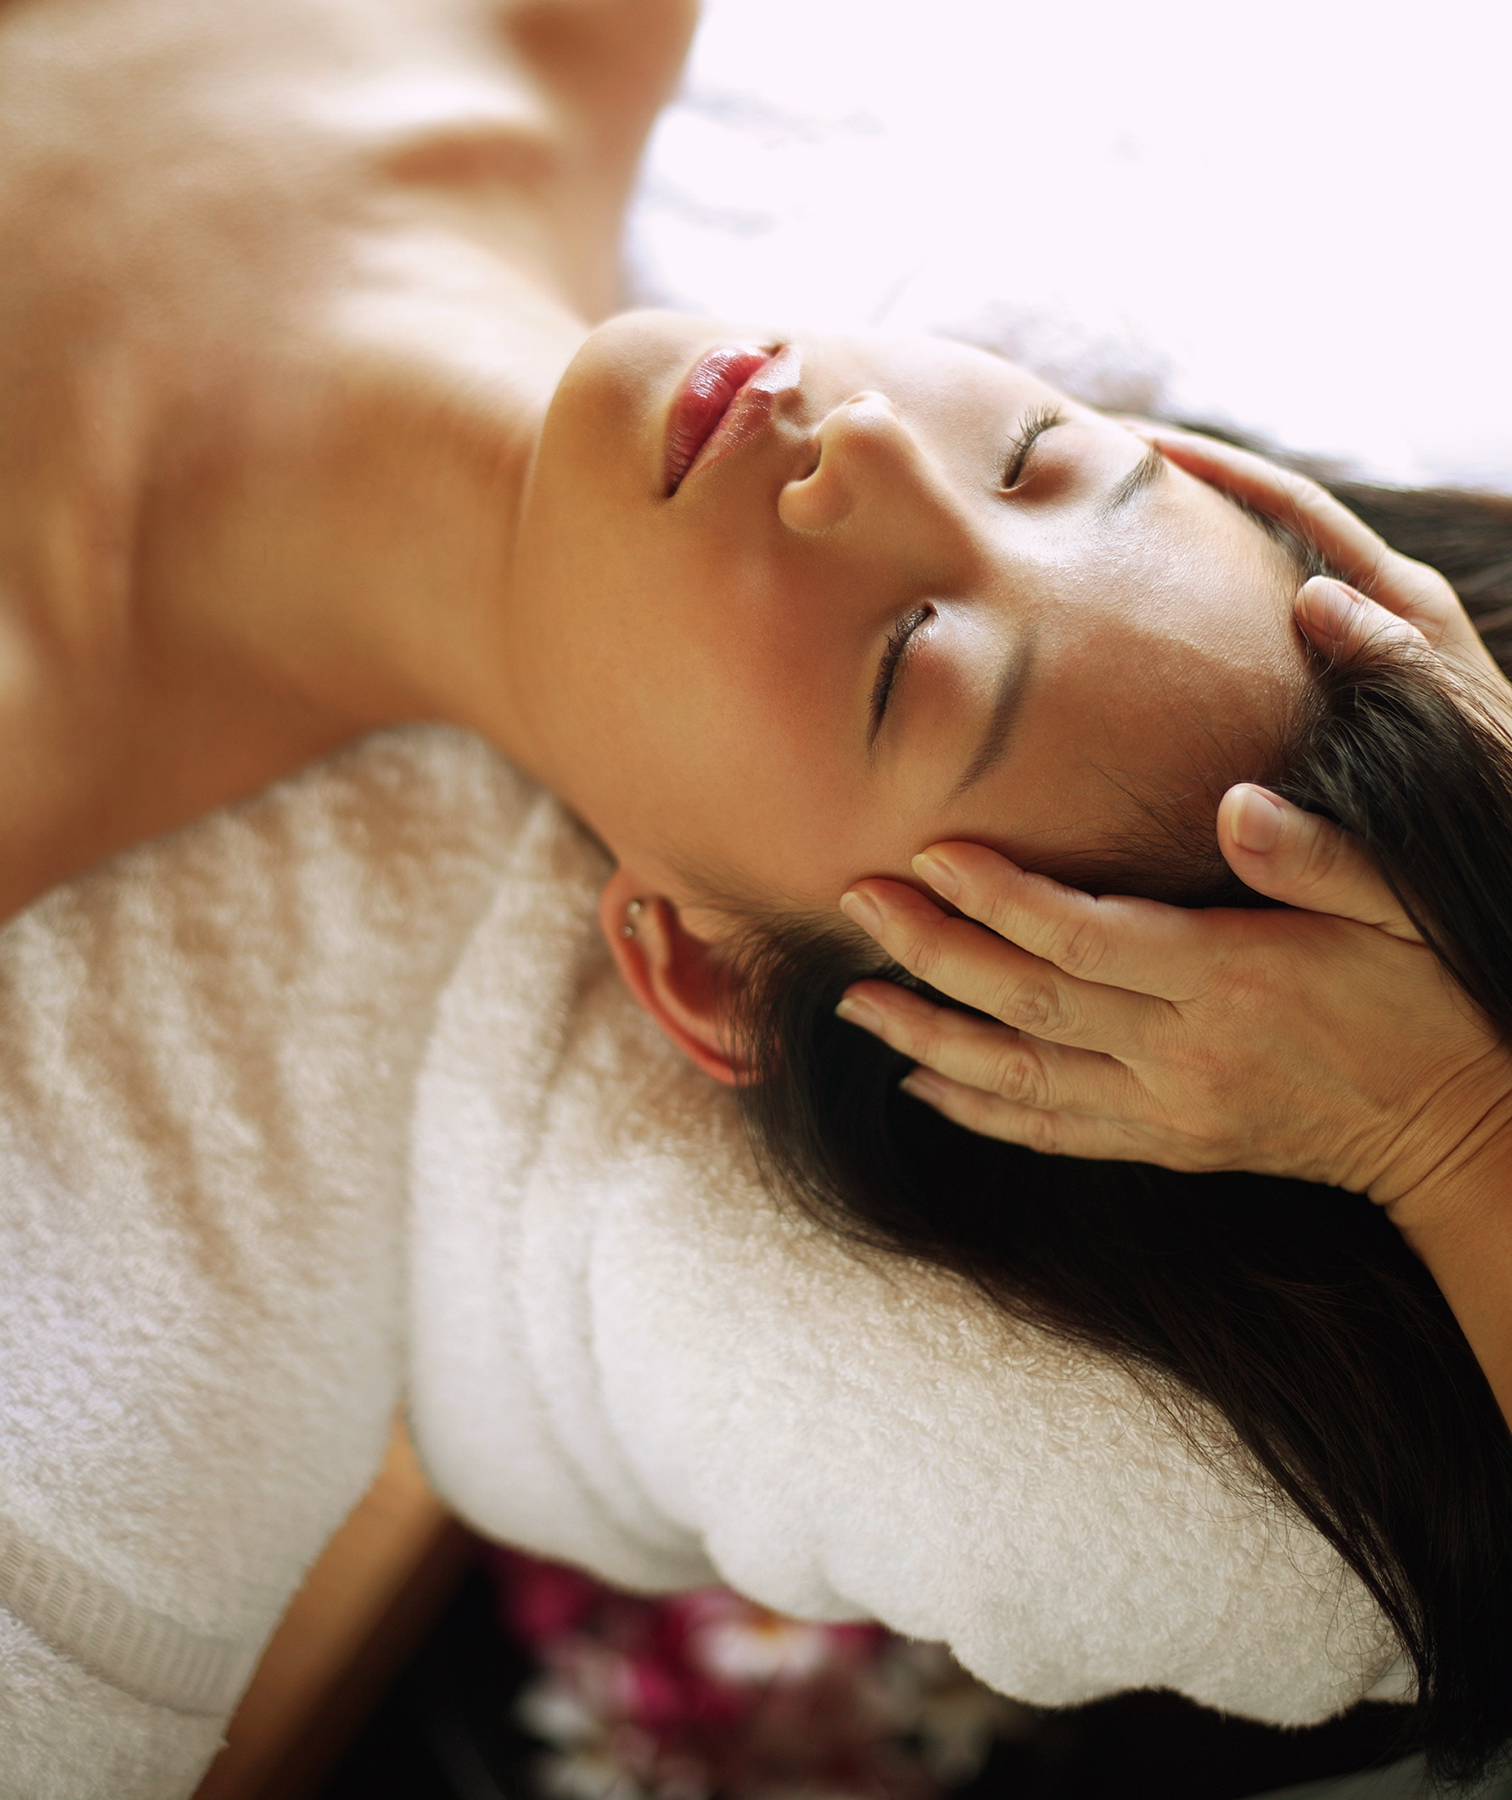 Woman receiving massage on table